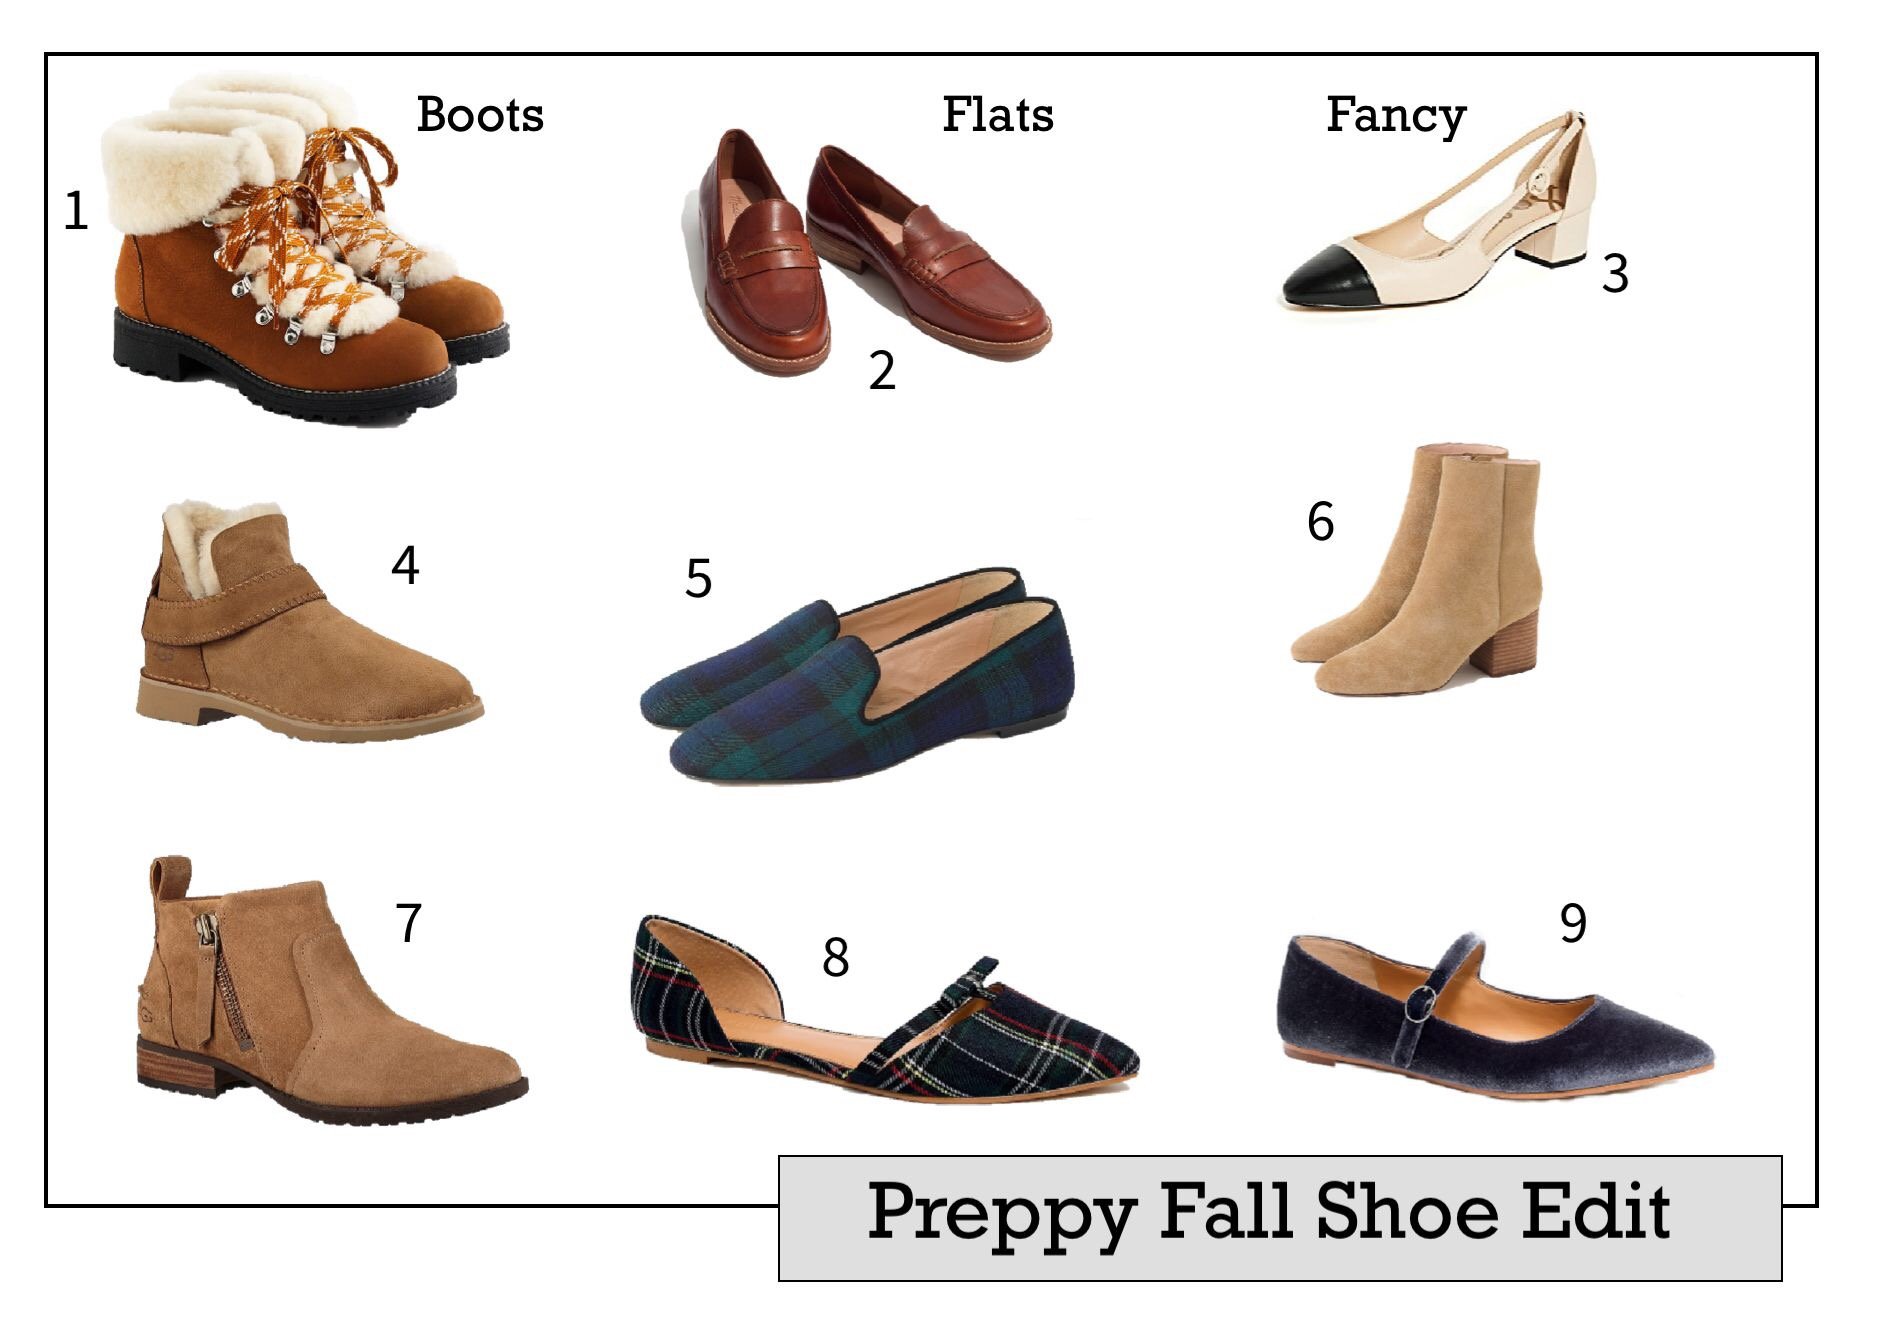 The Fall Shoe Edit